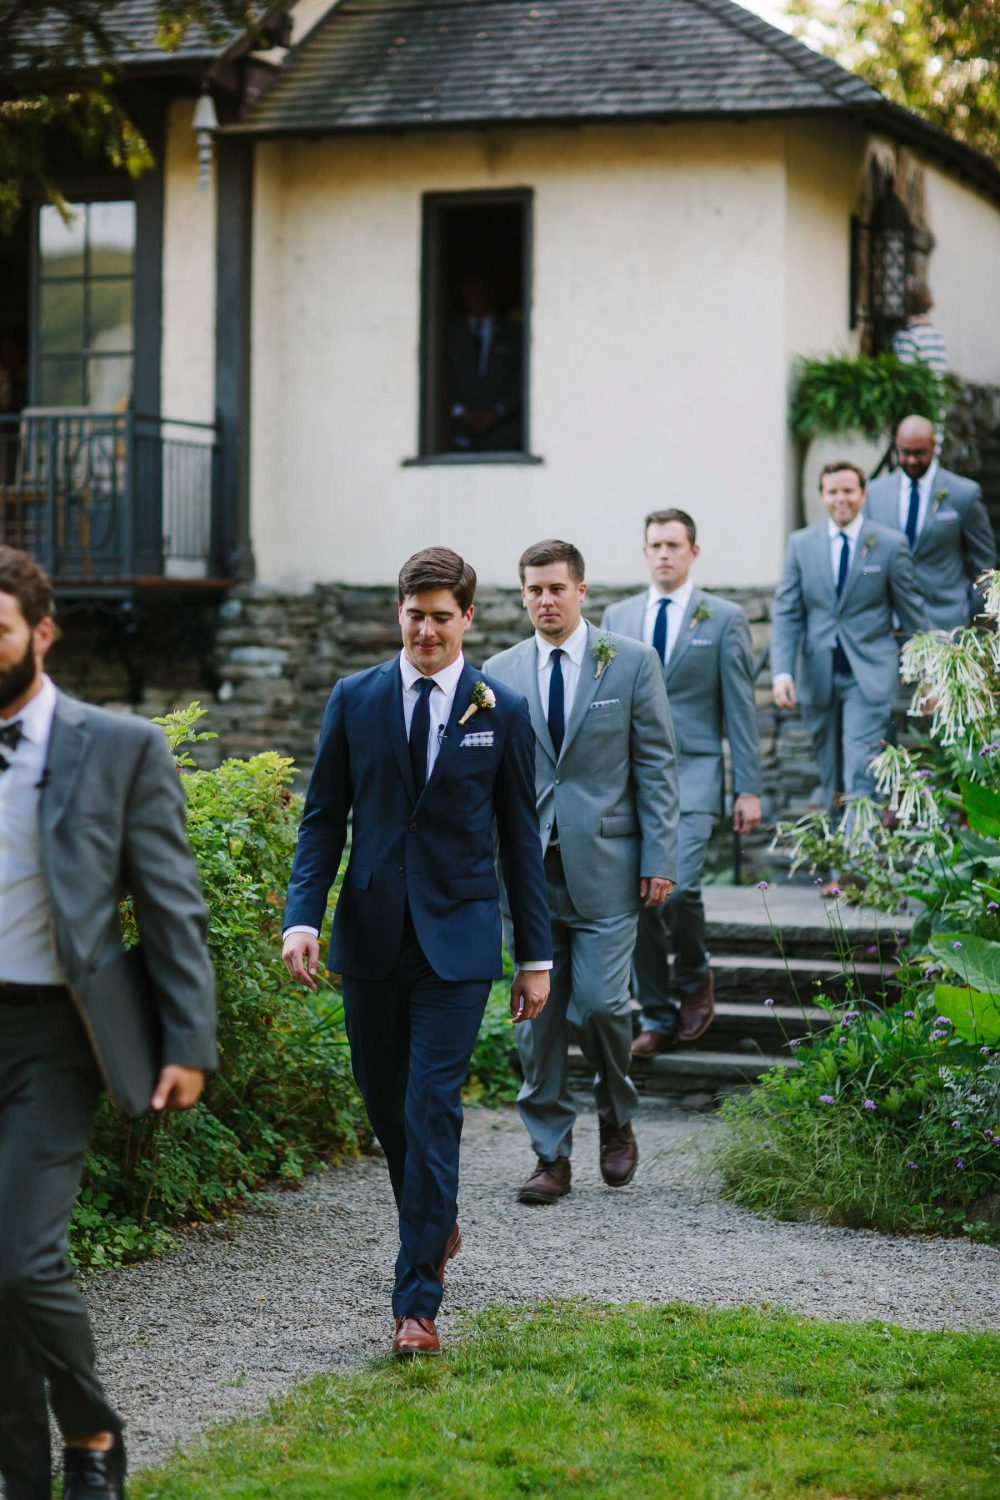 030-garden-wedding-cooperstown-ny-photographer